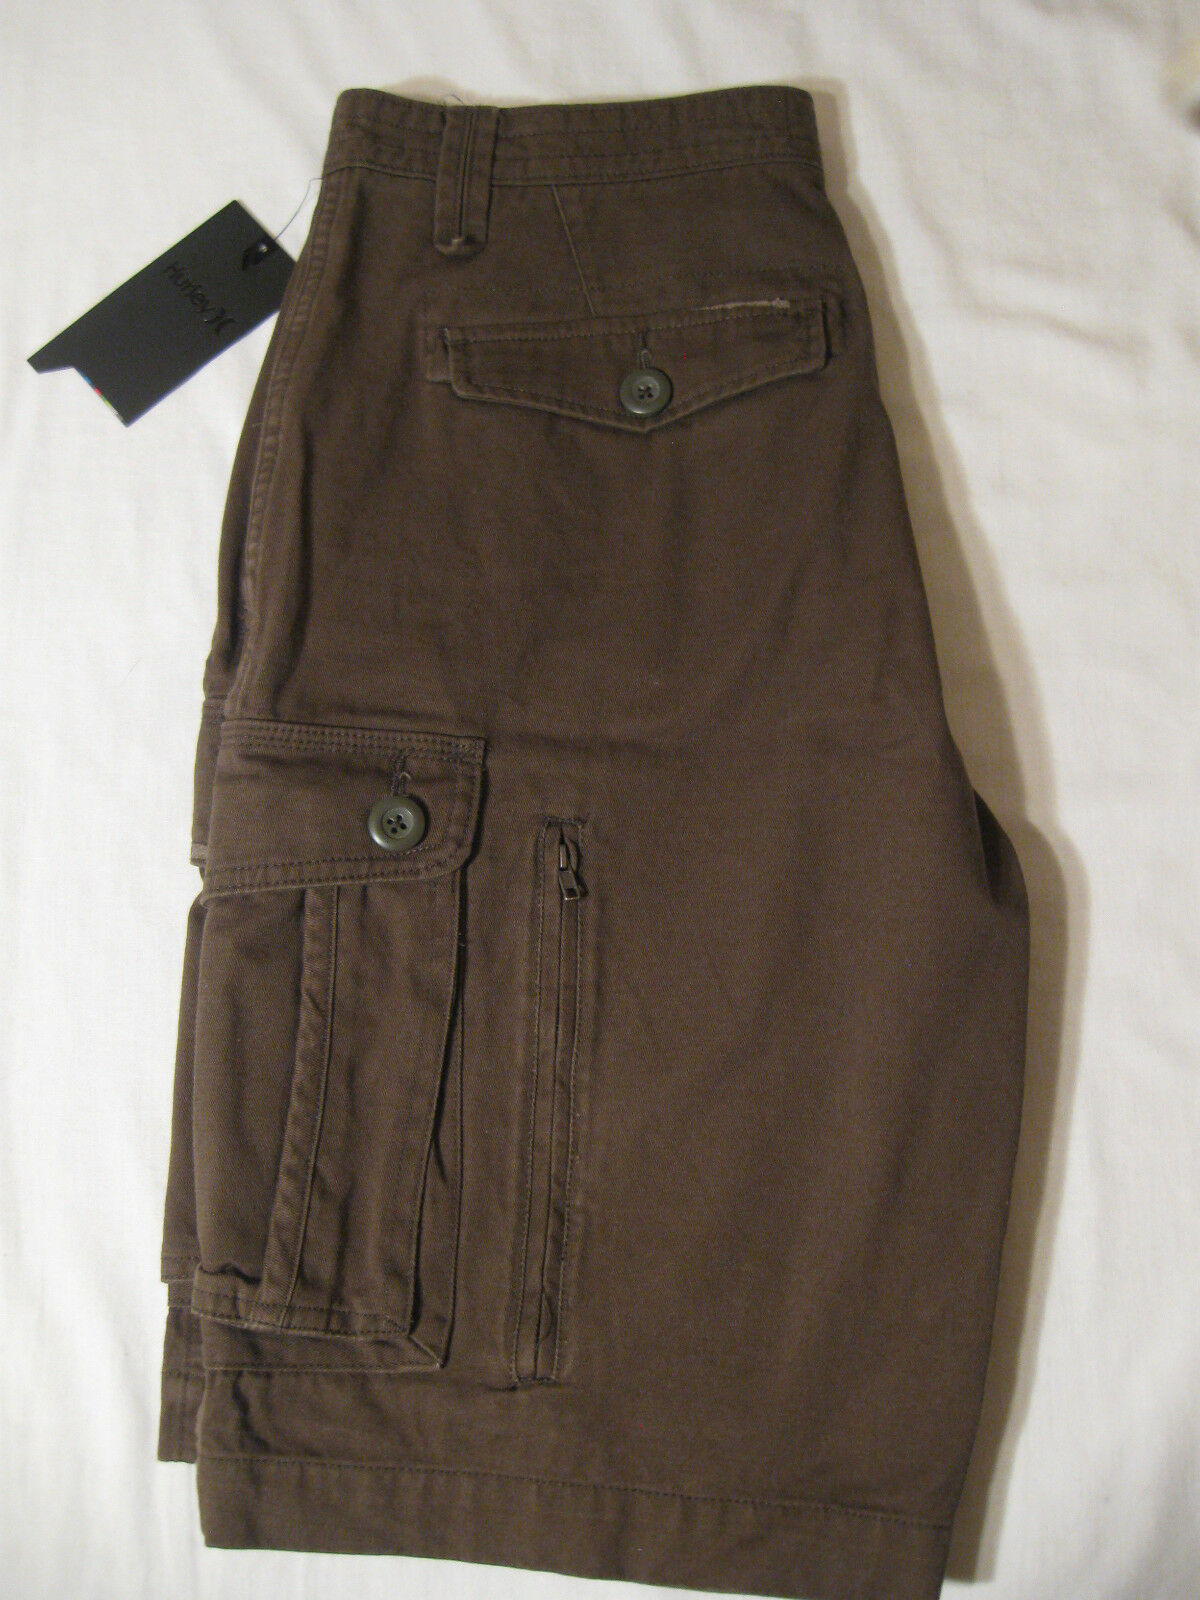 Hurley One and Only Cargo Shorts NWT 30 Distressed Brown 100% Cotton